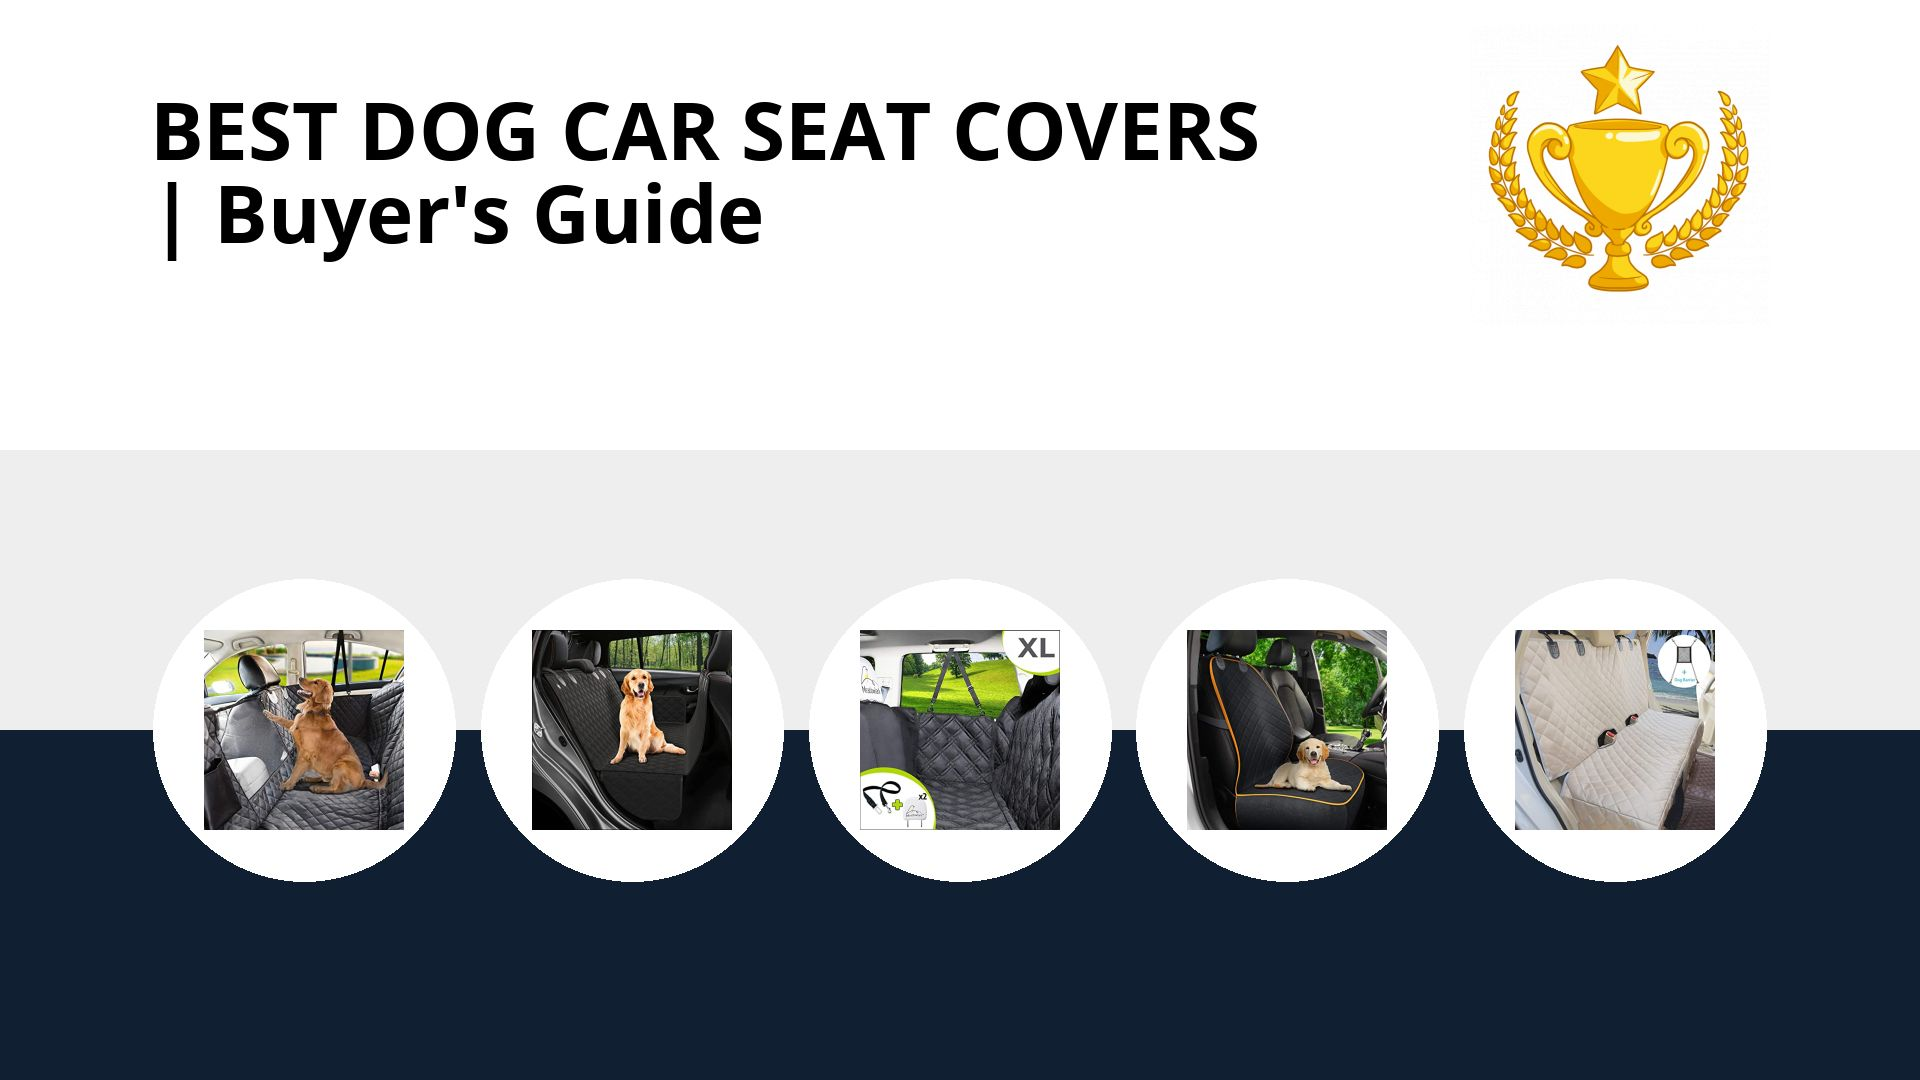 Best Dog Car Seat Covers: image